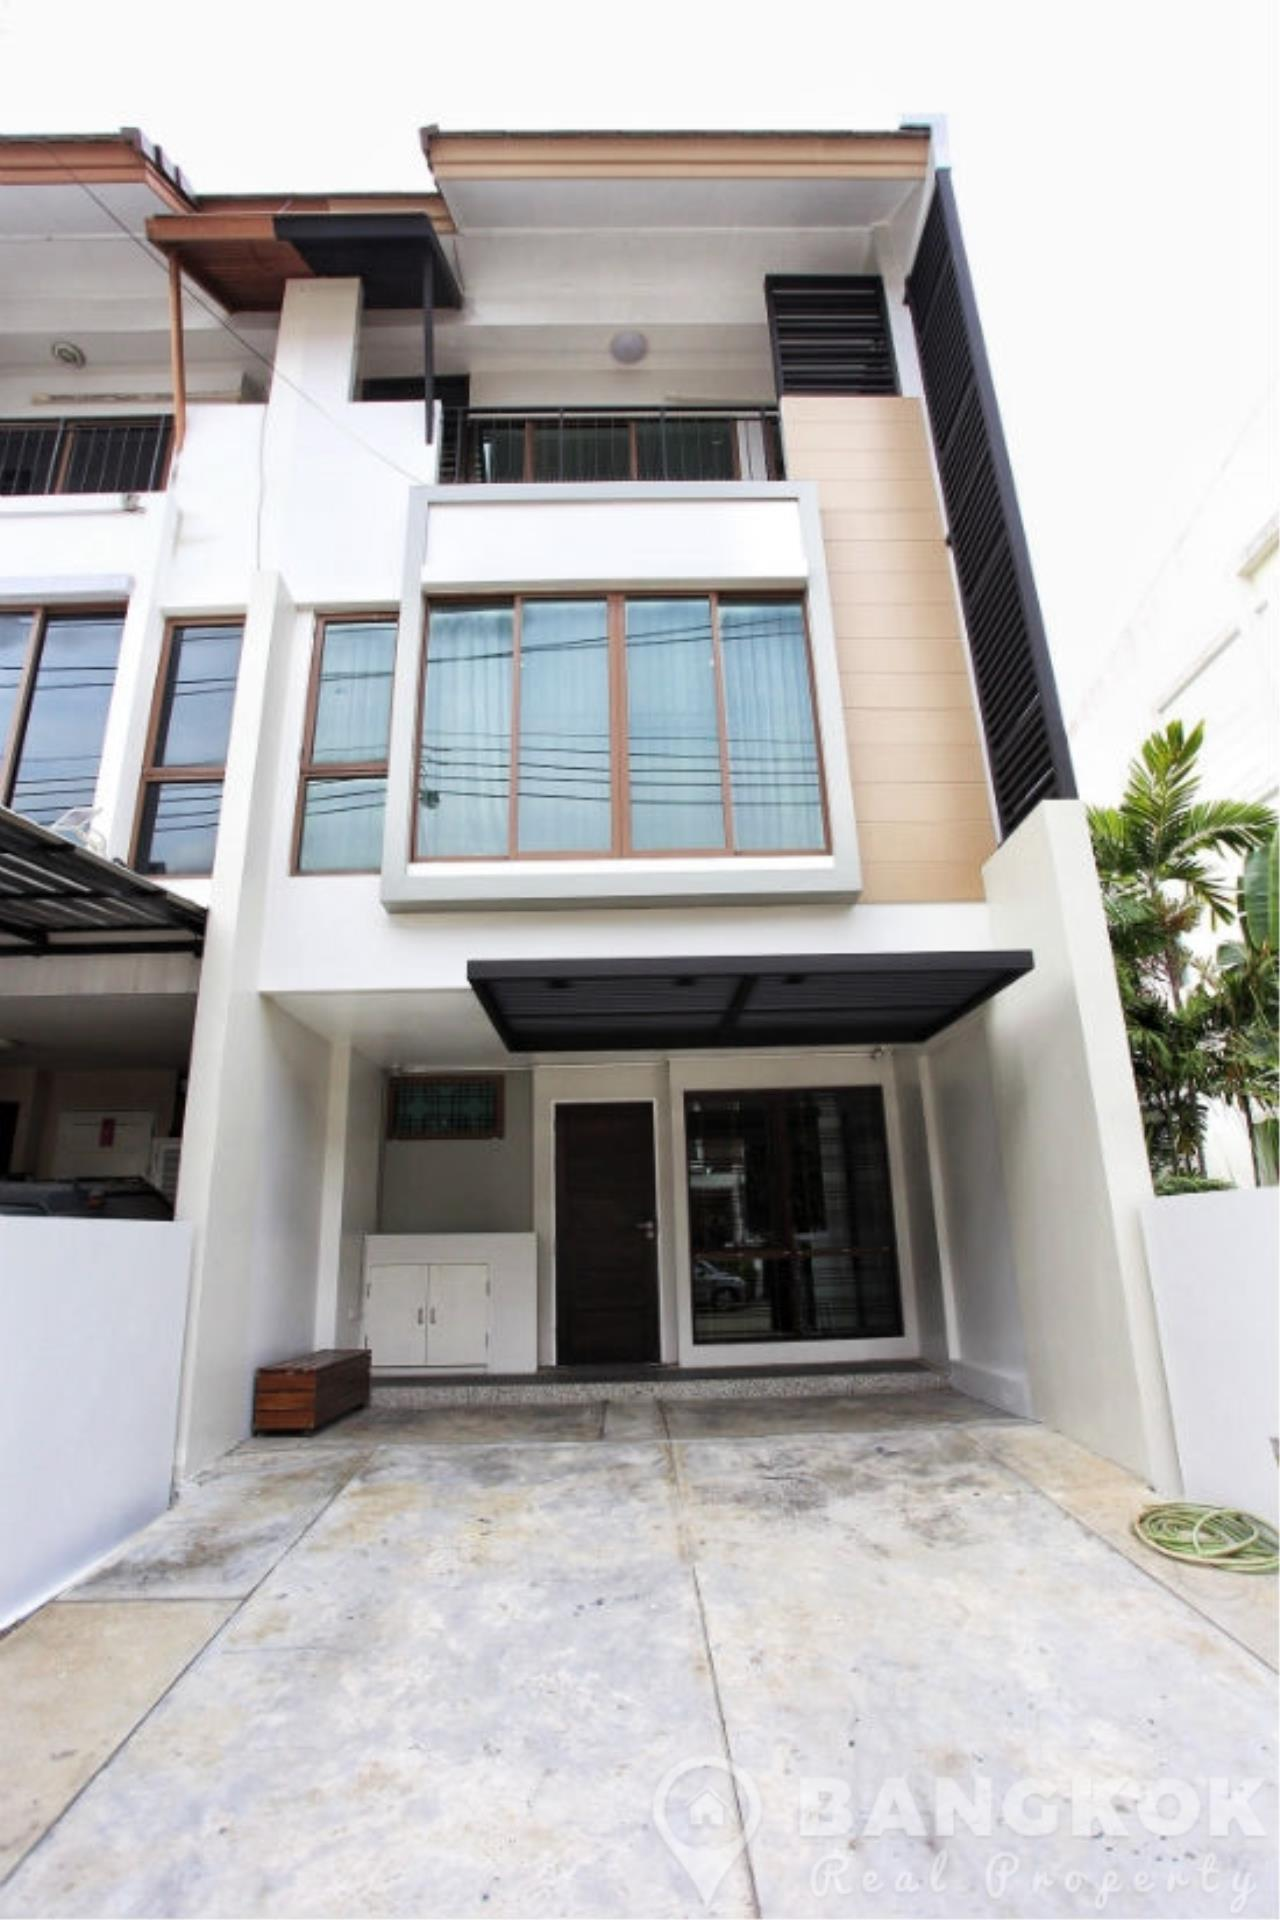 Bangkok Real Property Agency's Spacious 1st Rental 3 Bed 4 Bath Bangchak Townhouse near BTS 11